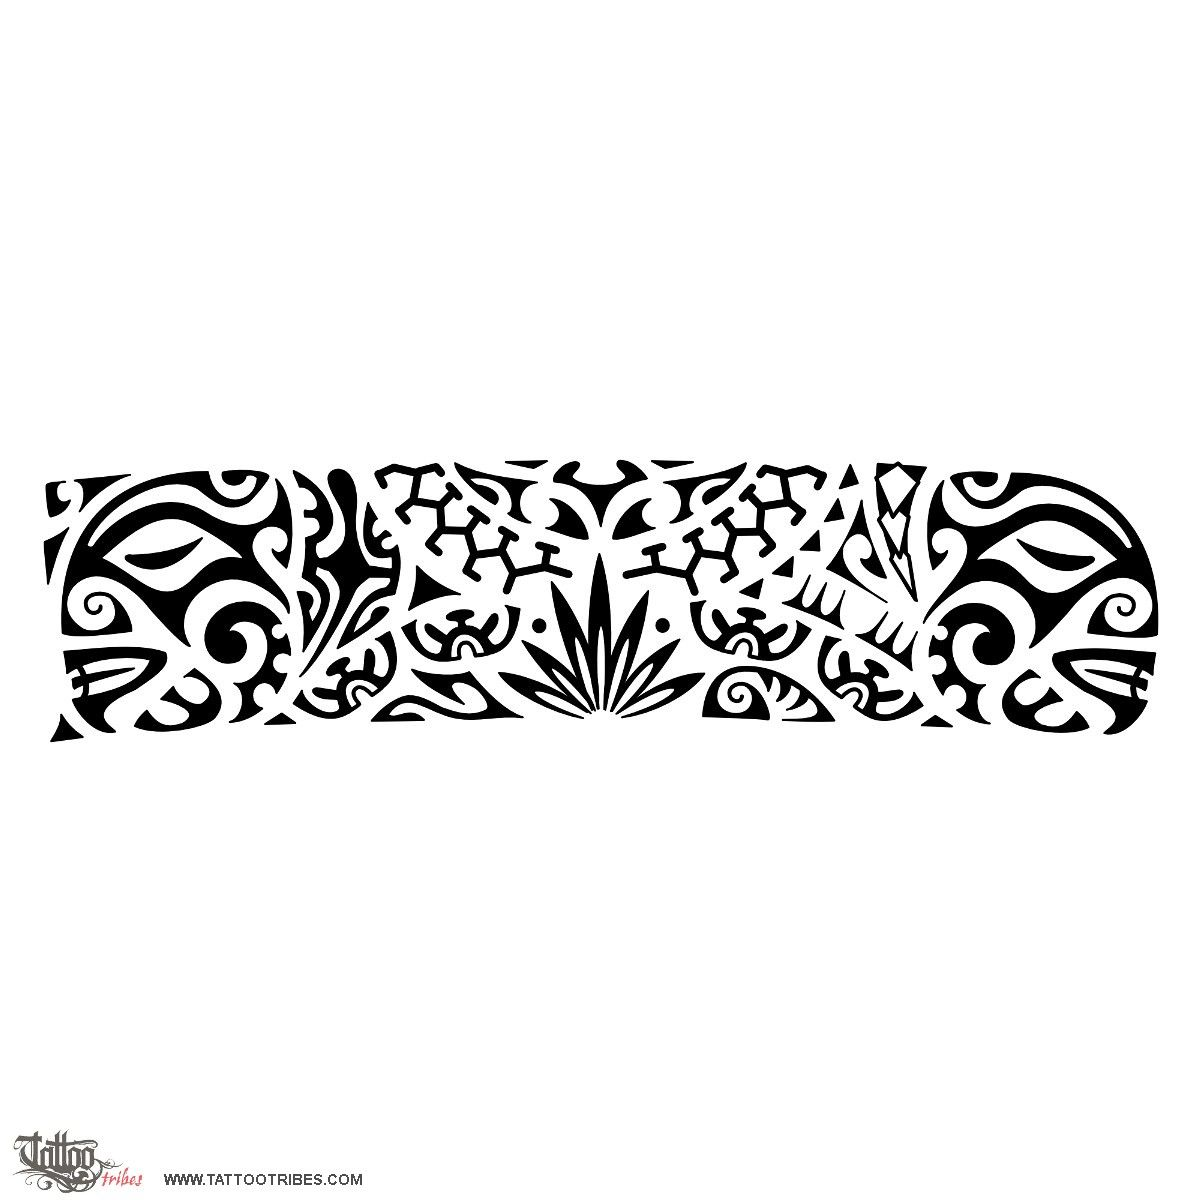 family and friends this armband tattoo about the. Black Bedroom Furniture Sets. Home Design Ideas